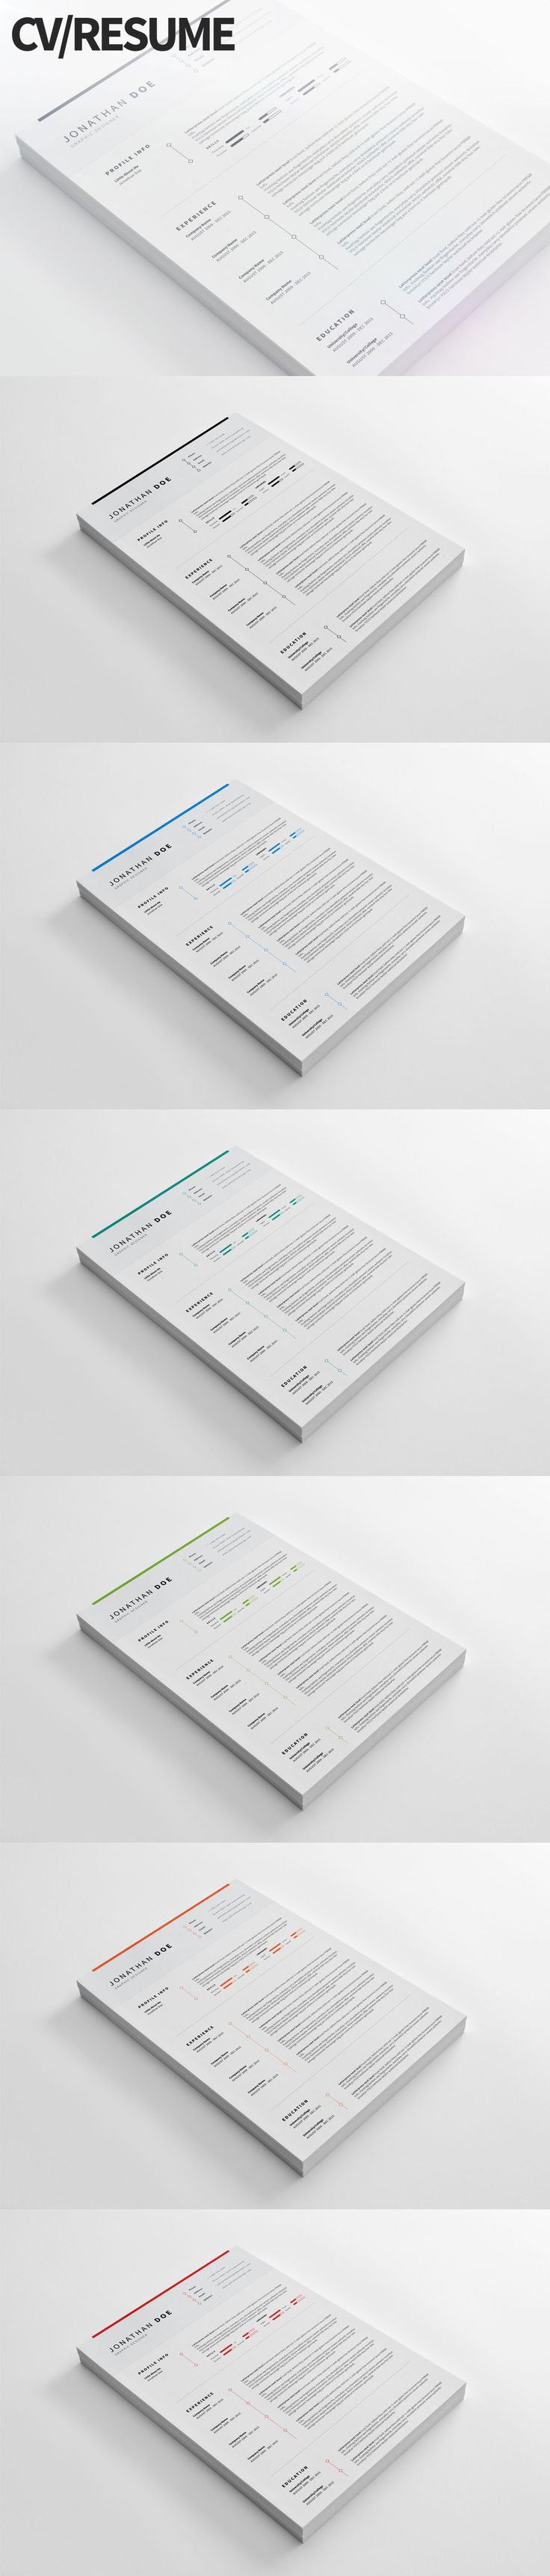 Pilot Resume Examples Excel  Best Resume  Cv Design Tempaltes Images On Pinterest  Cv  Sample Lawyer Resume with Sales Account Manager Resume Pdf Cvresume  Clean And Minimal No Experience Resume